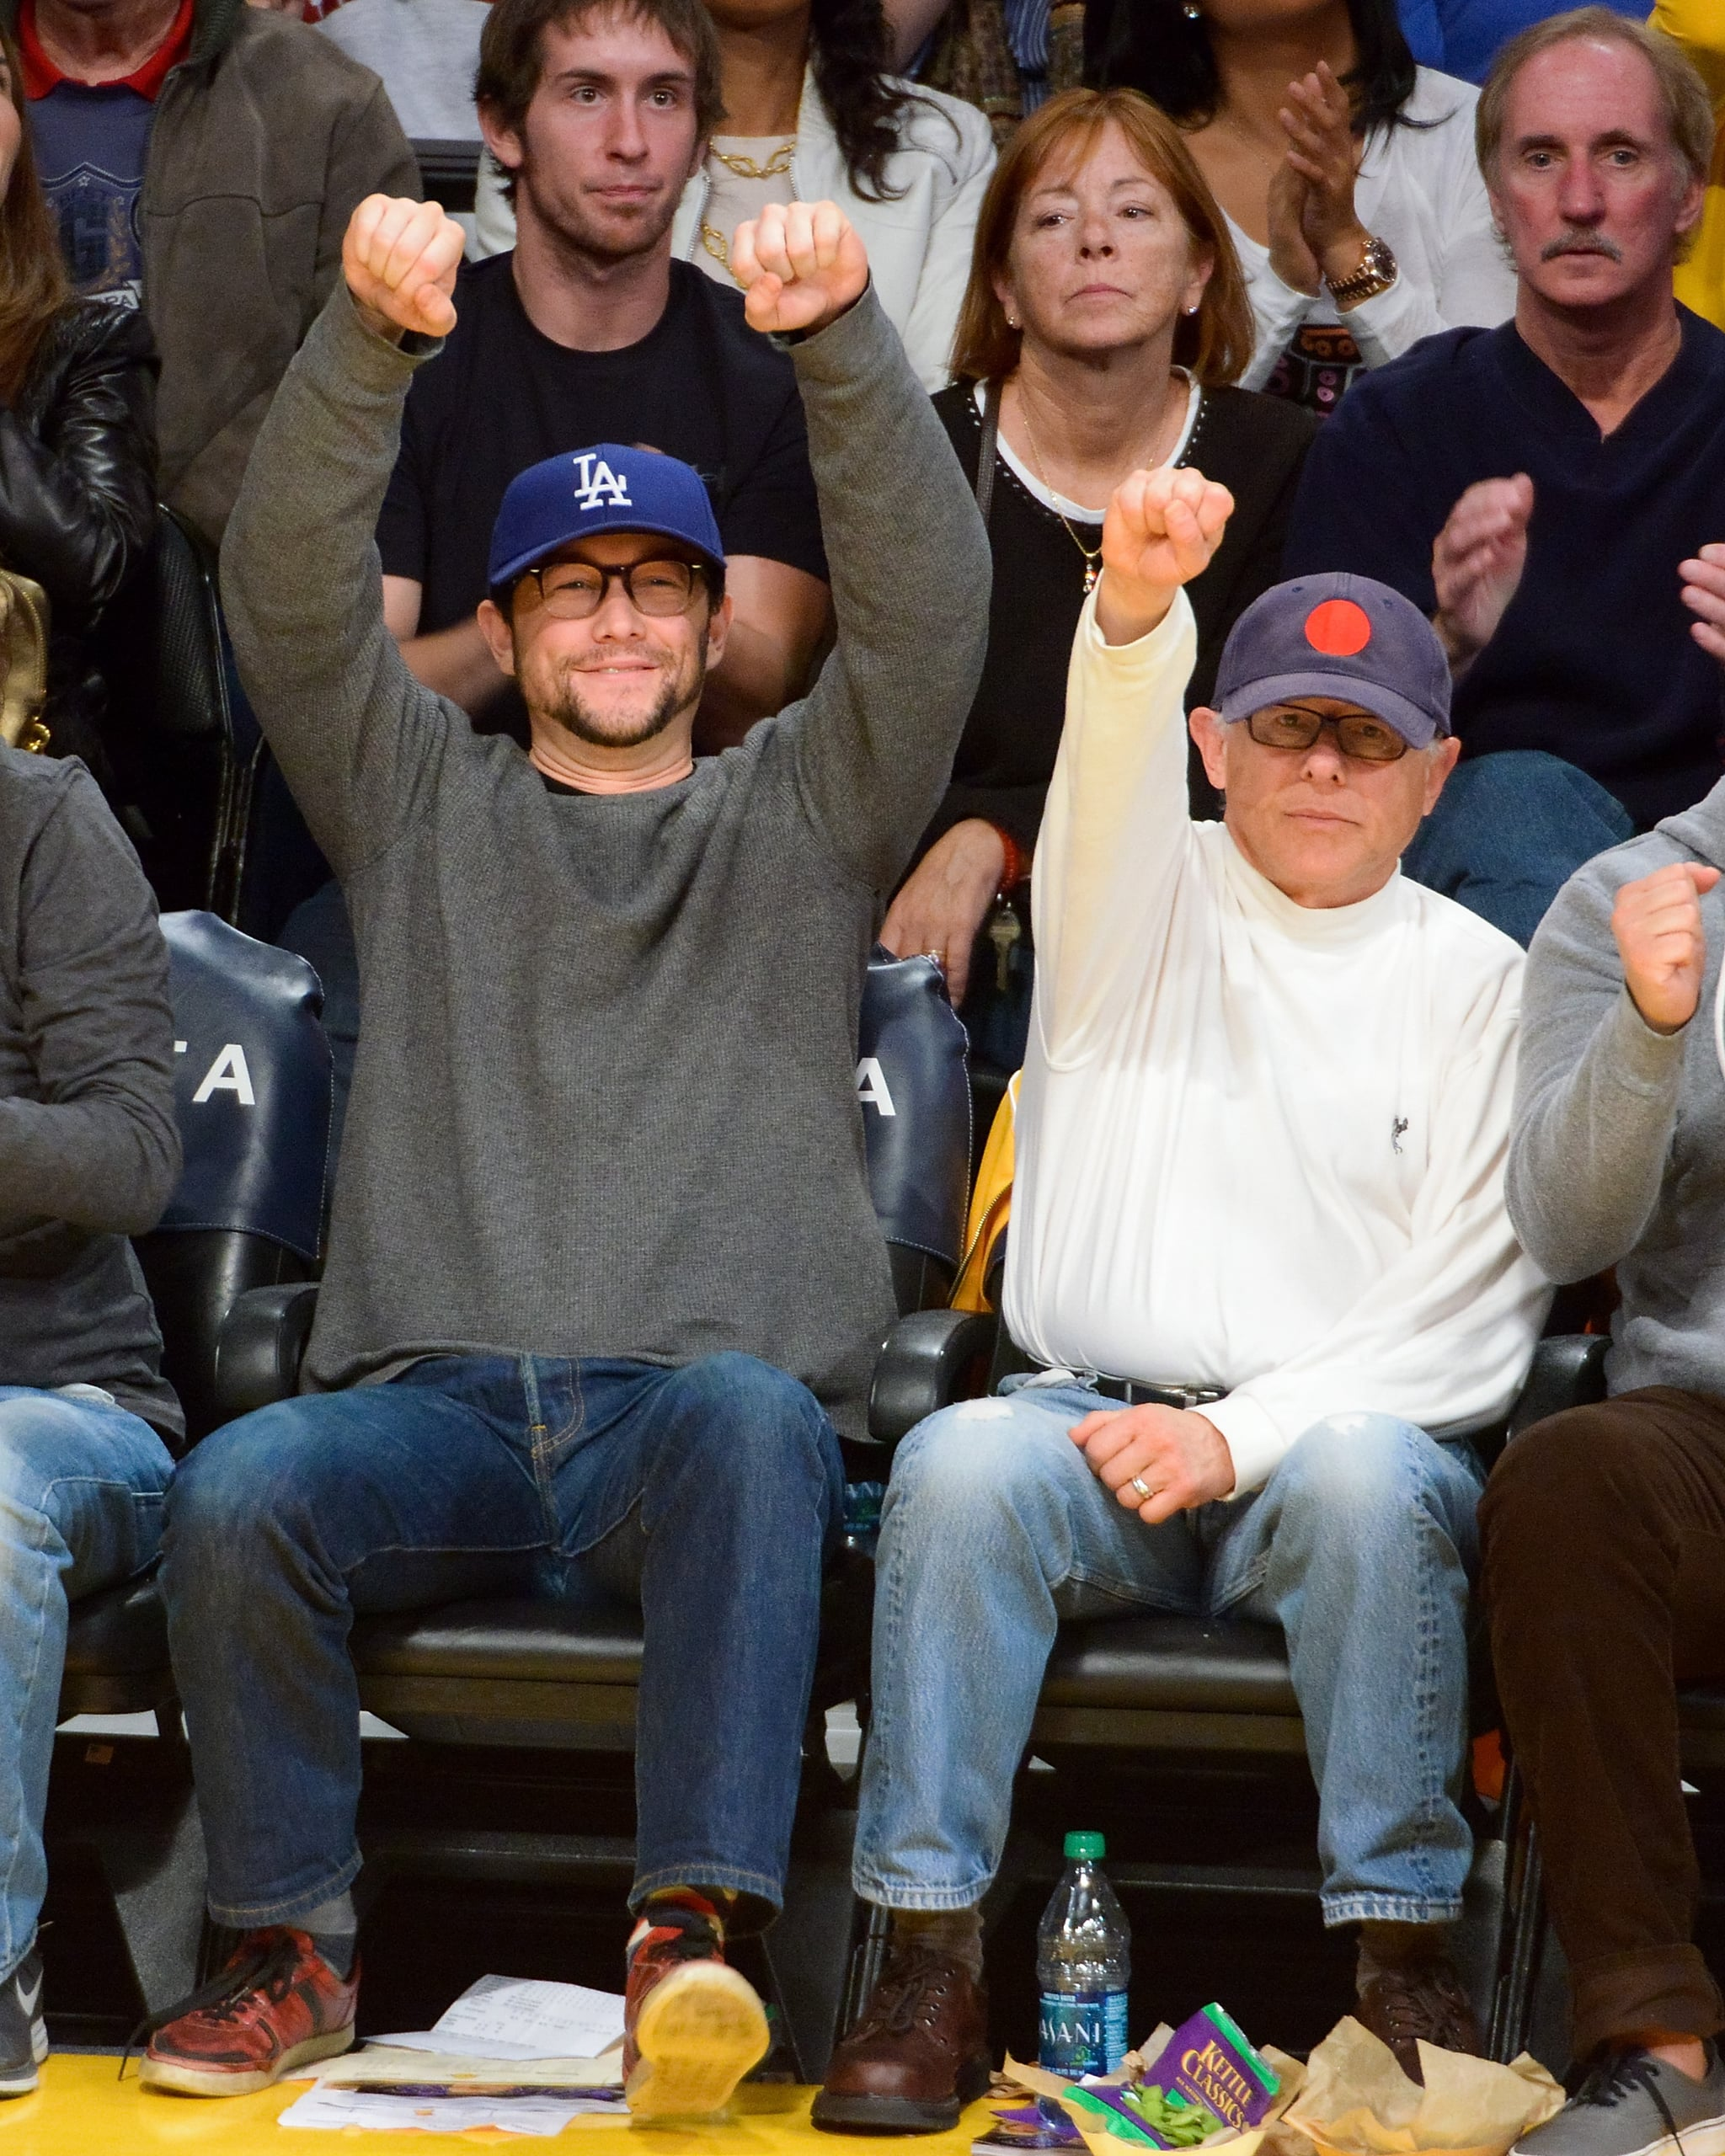 Joseph Gordon-Levitt cheered on the LA Lakers with his dad, Dennis, in January 2013.